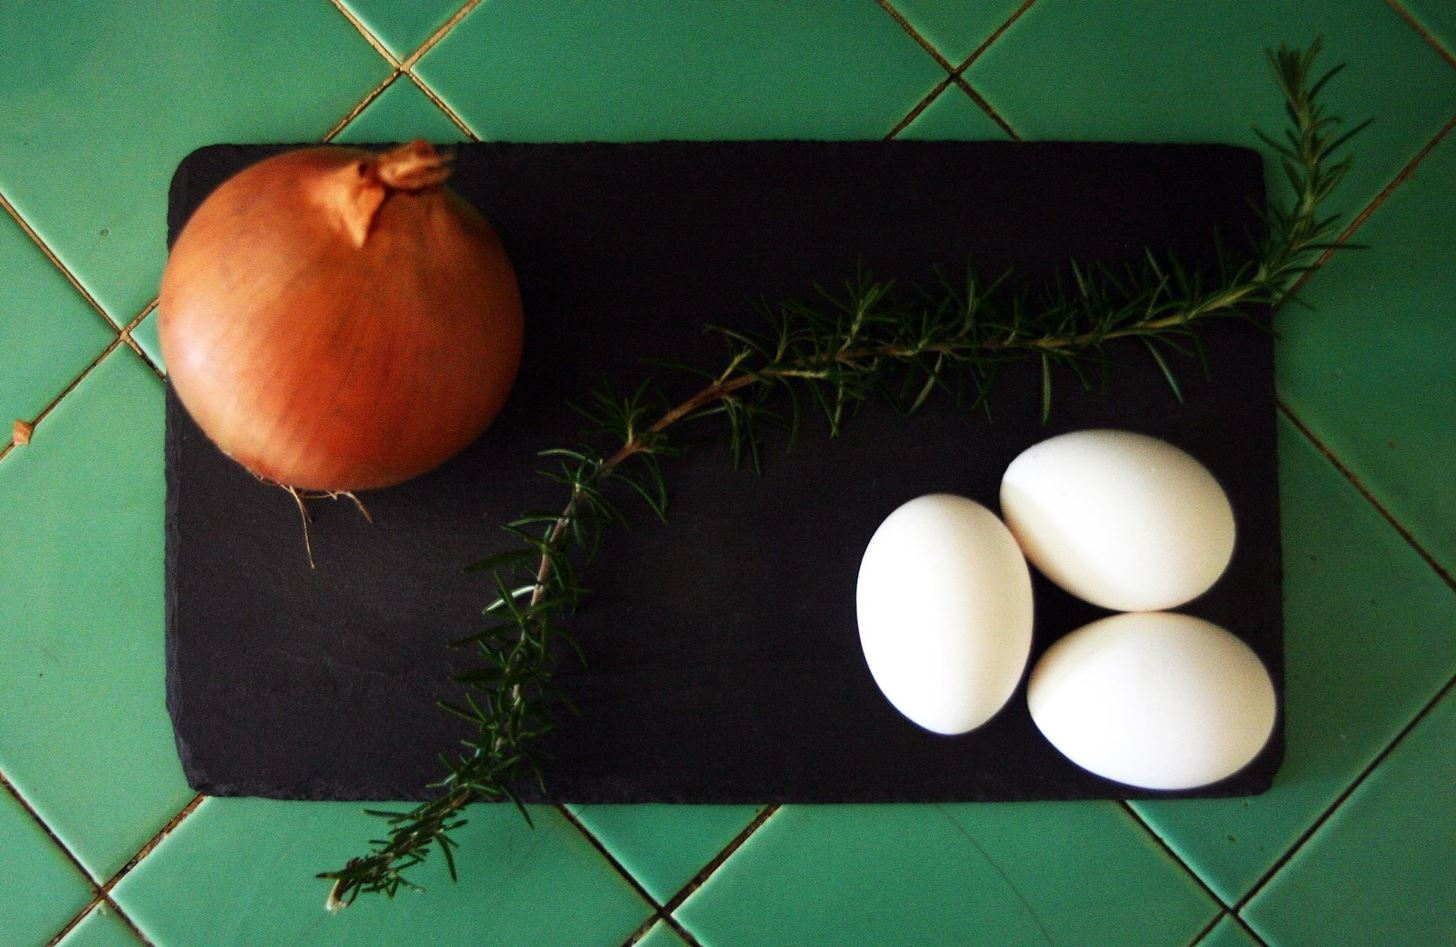 How to Color Easter Eggs with Veggies & Herbs Instead of Store-Bought Dyes